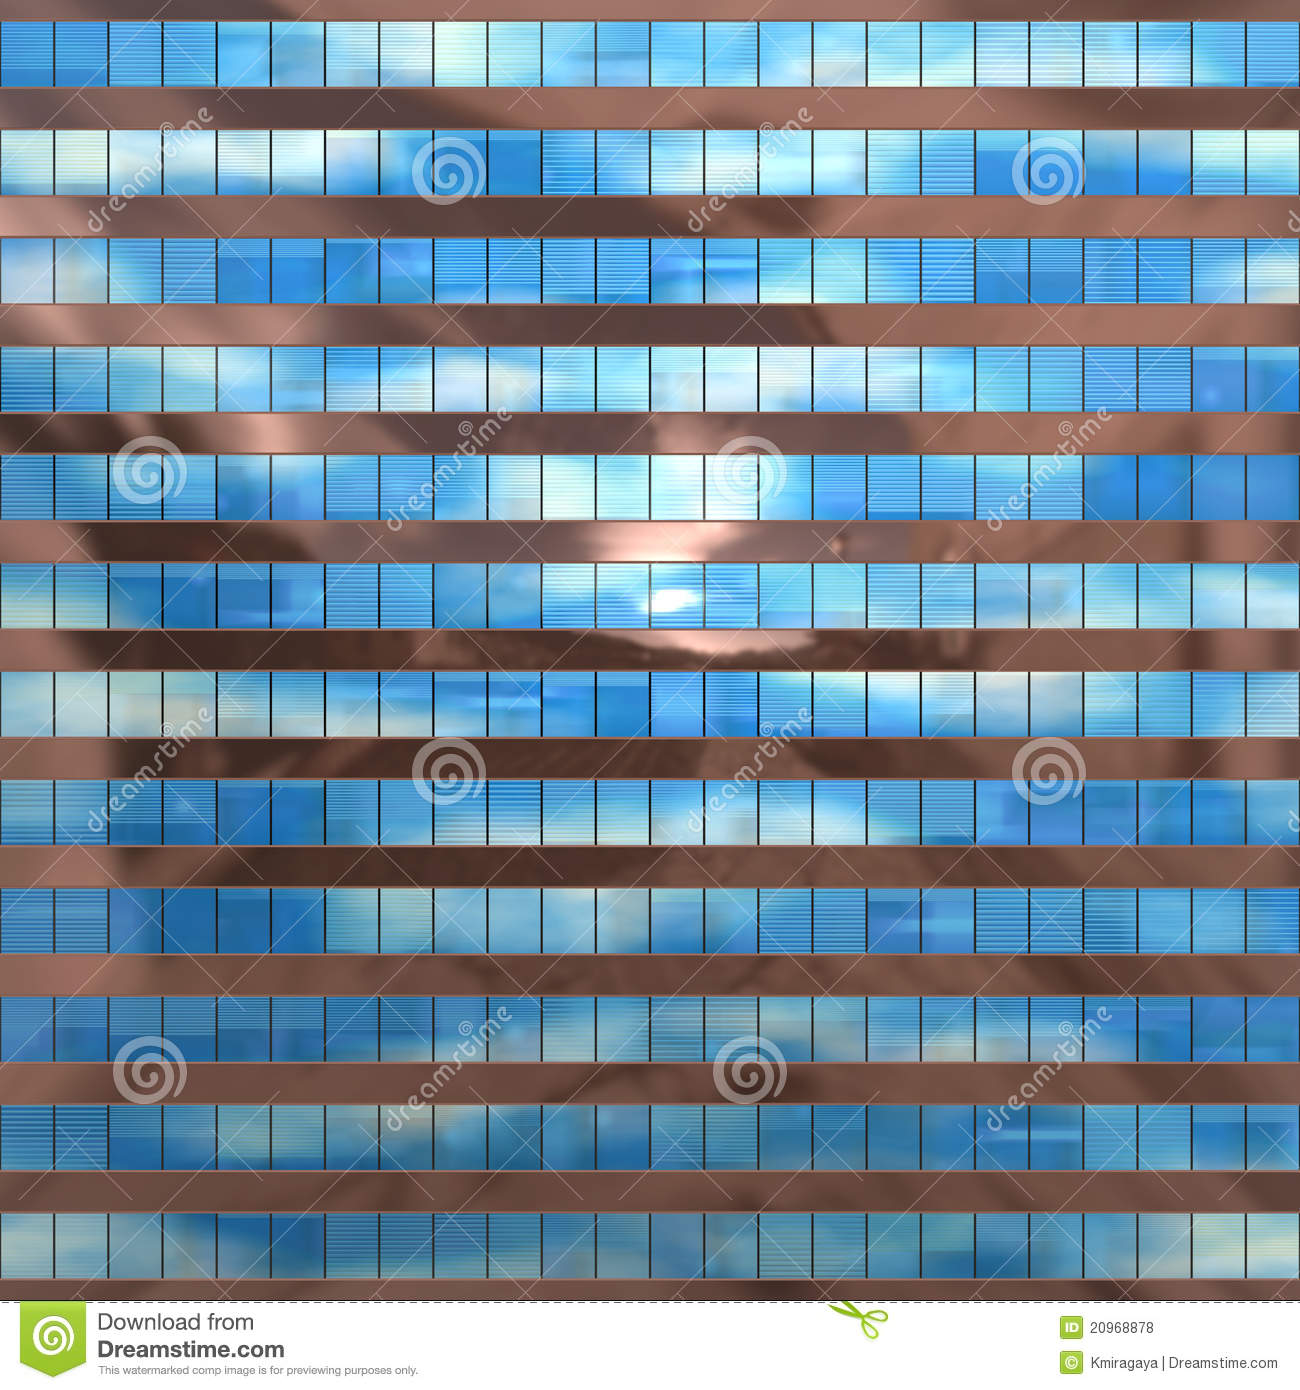 Seamless Texture Resembling Skyscrapers Windows Royalty